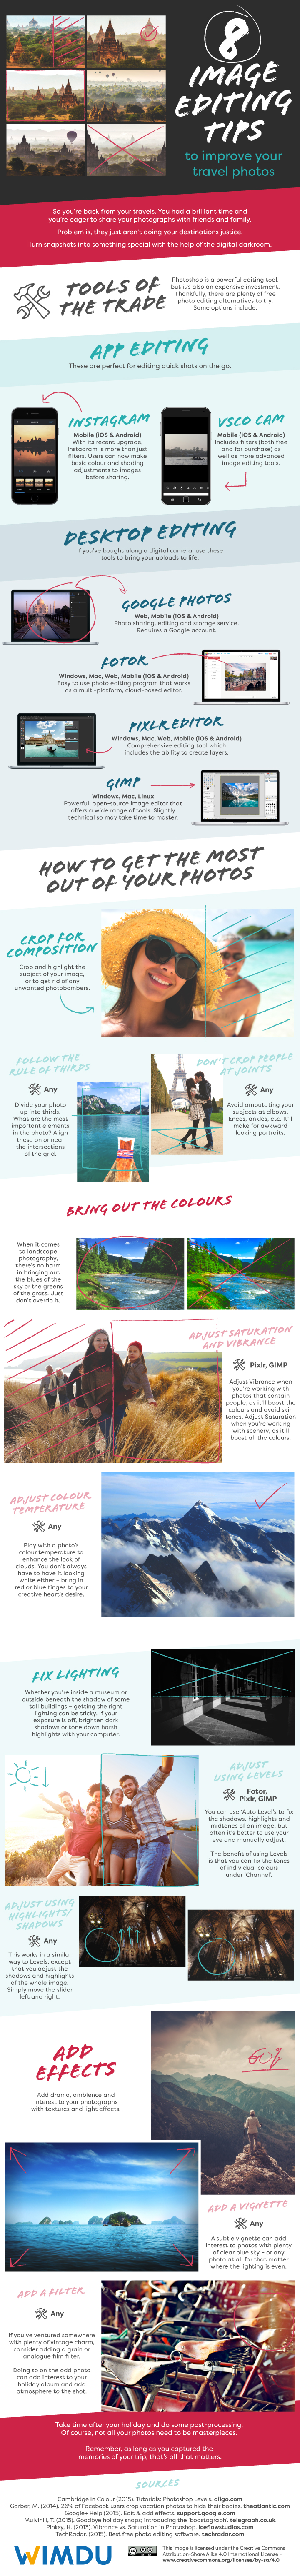 8-image-editing-tips-to-improve-your-travel-photos-final